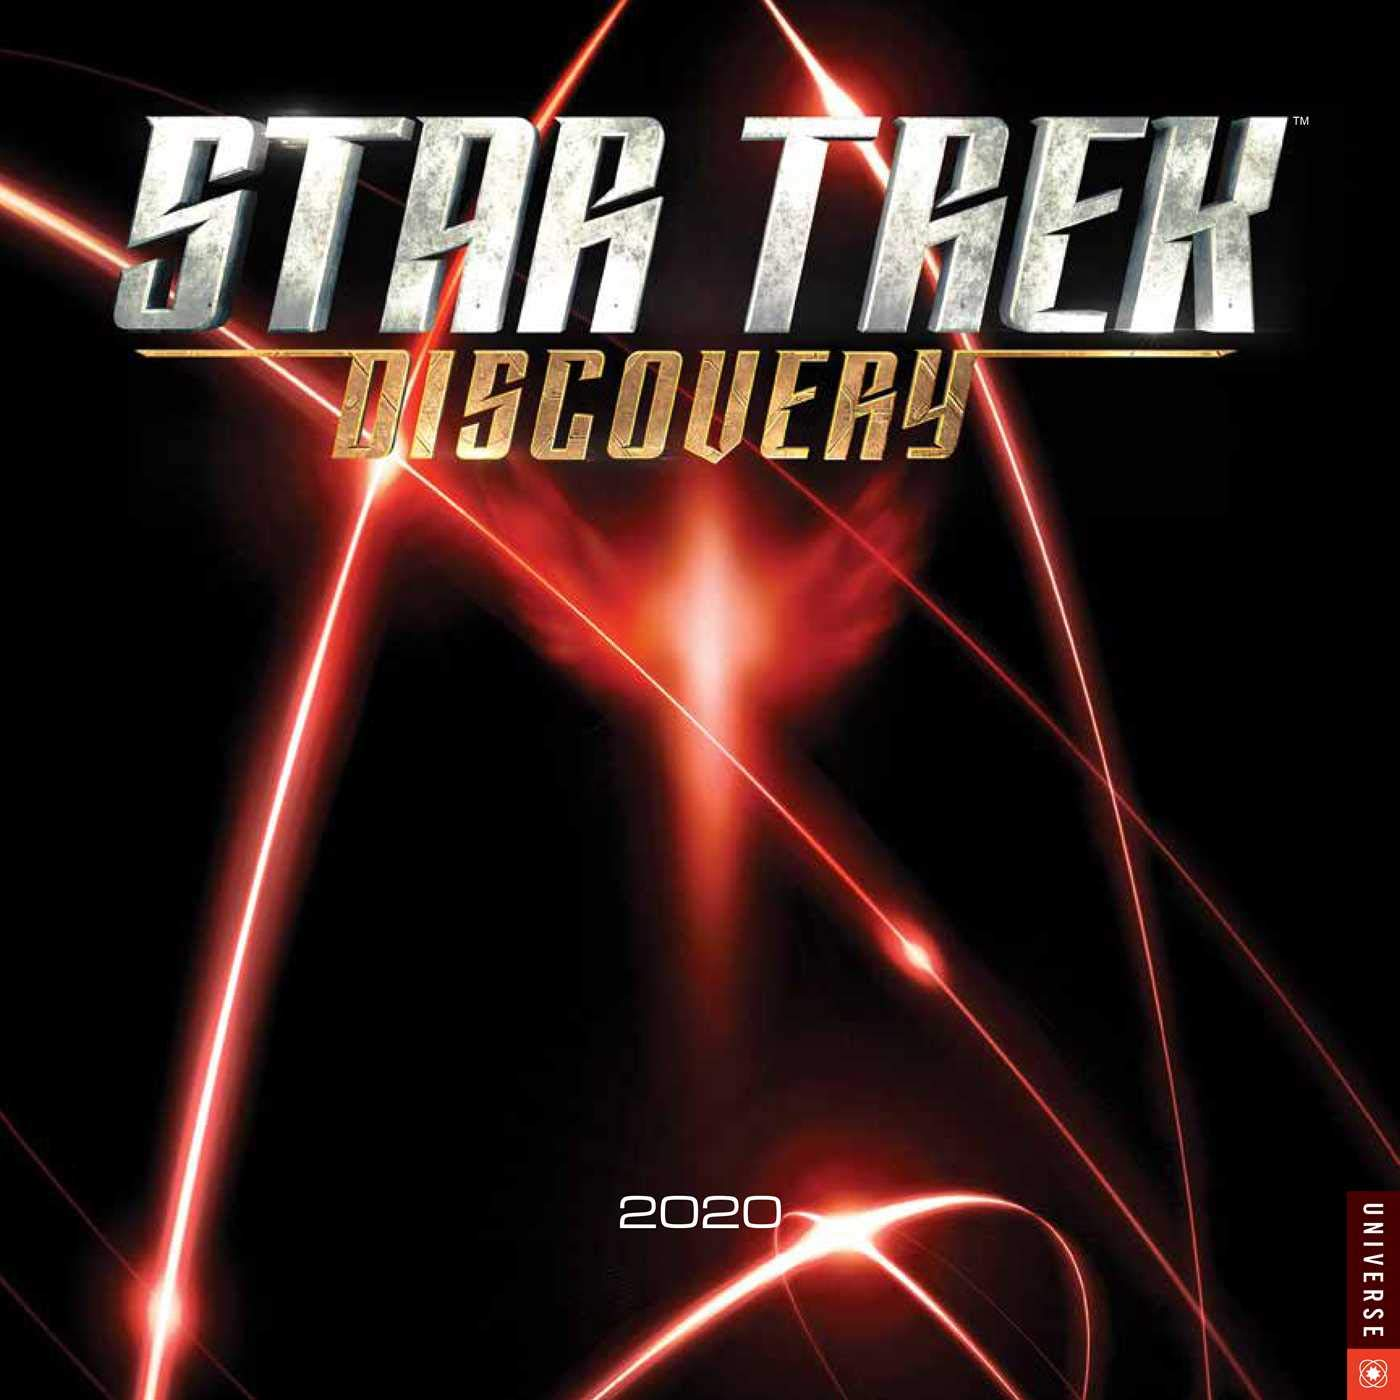 Star Trek Discovery 2020 Wall Calendar by Universe Publishing